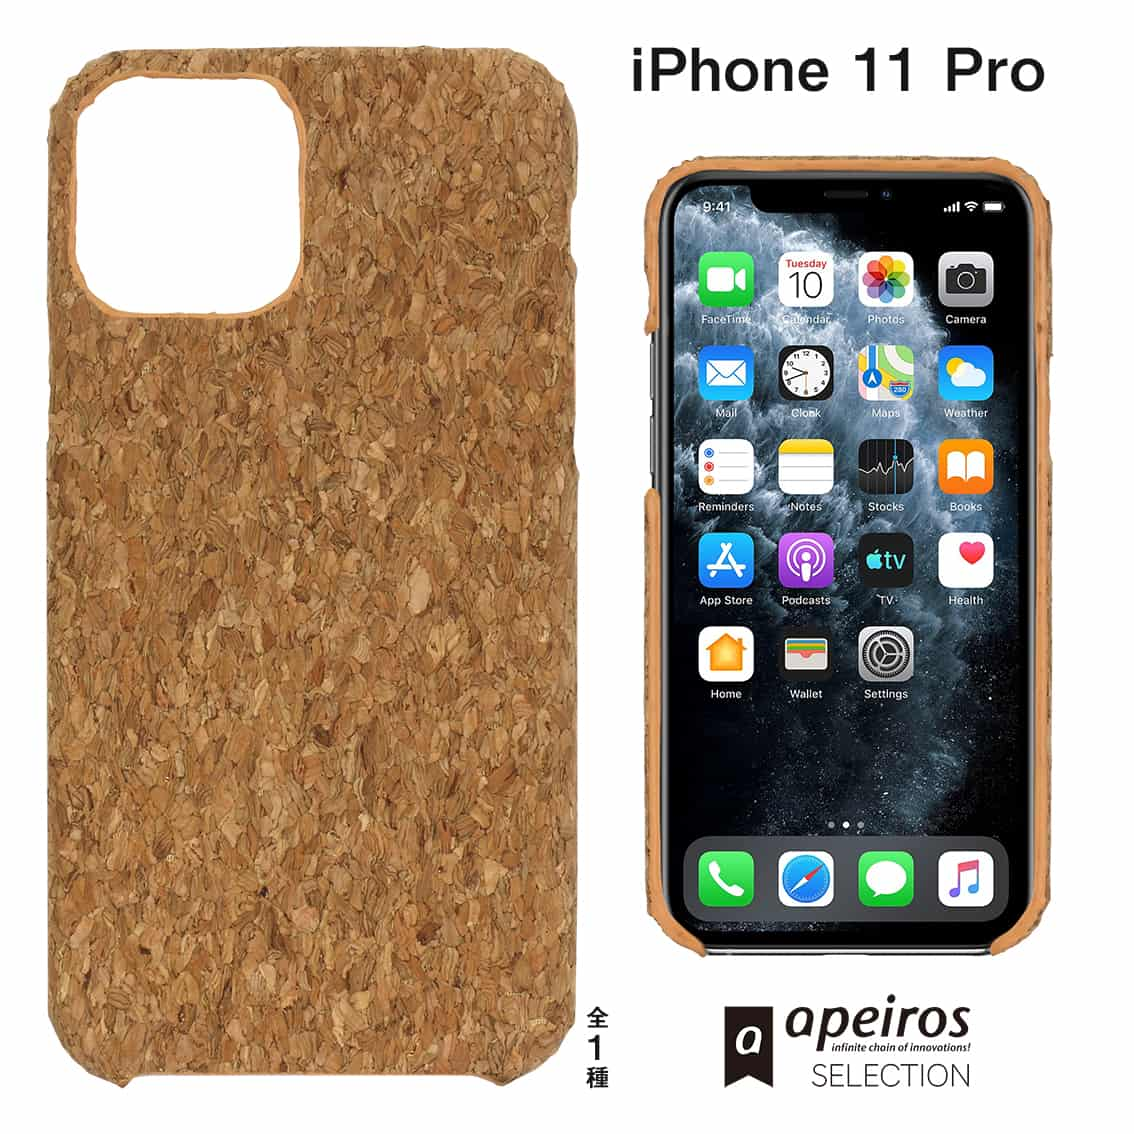 iPhone 11 Pro コルクケース[apeiros SELECTION]